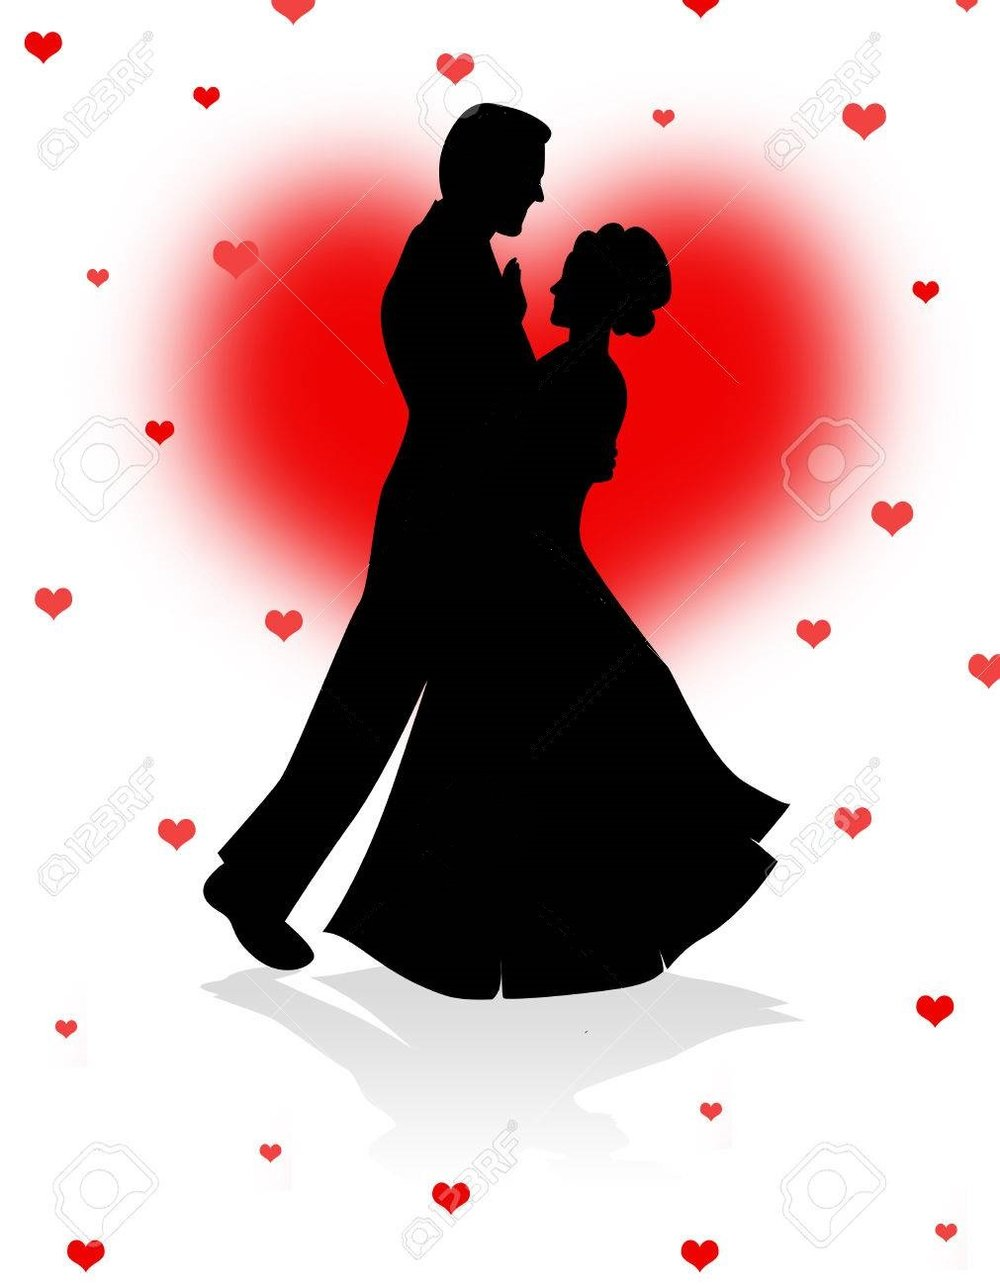 38544563-silhouette-of-couple-dancing-together-on-red-hearts-background.jpg